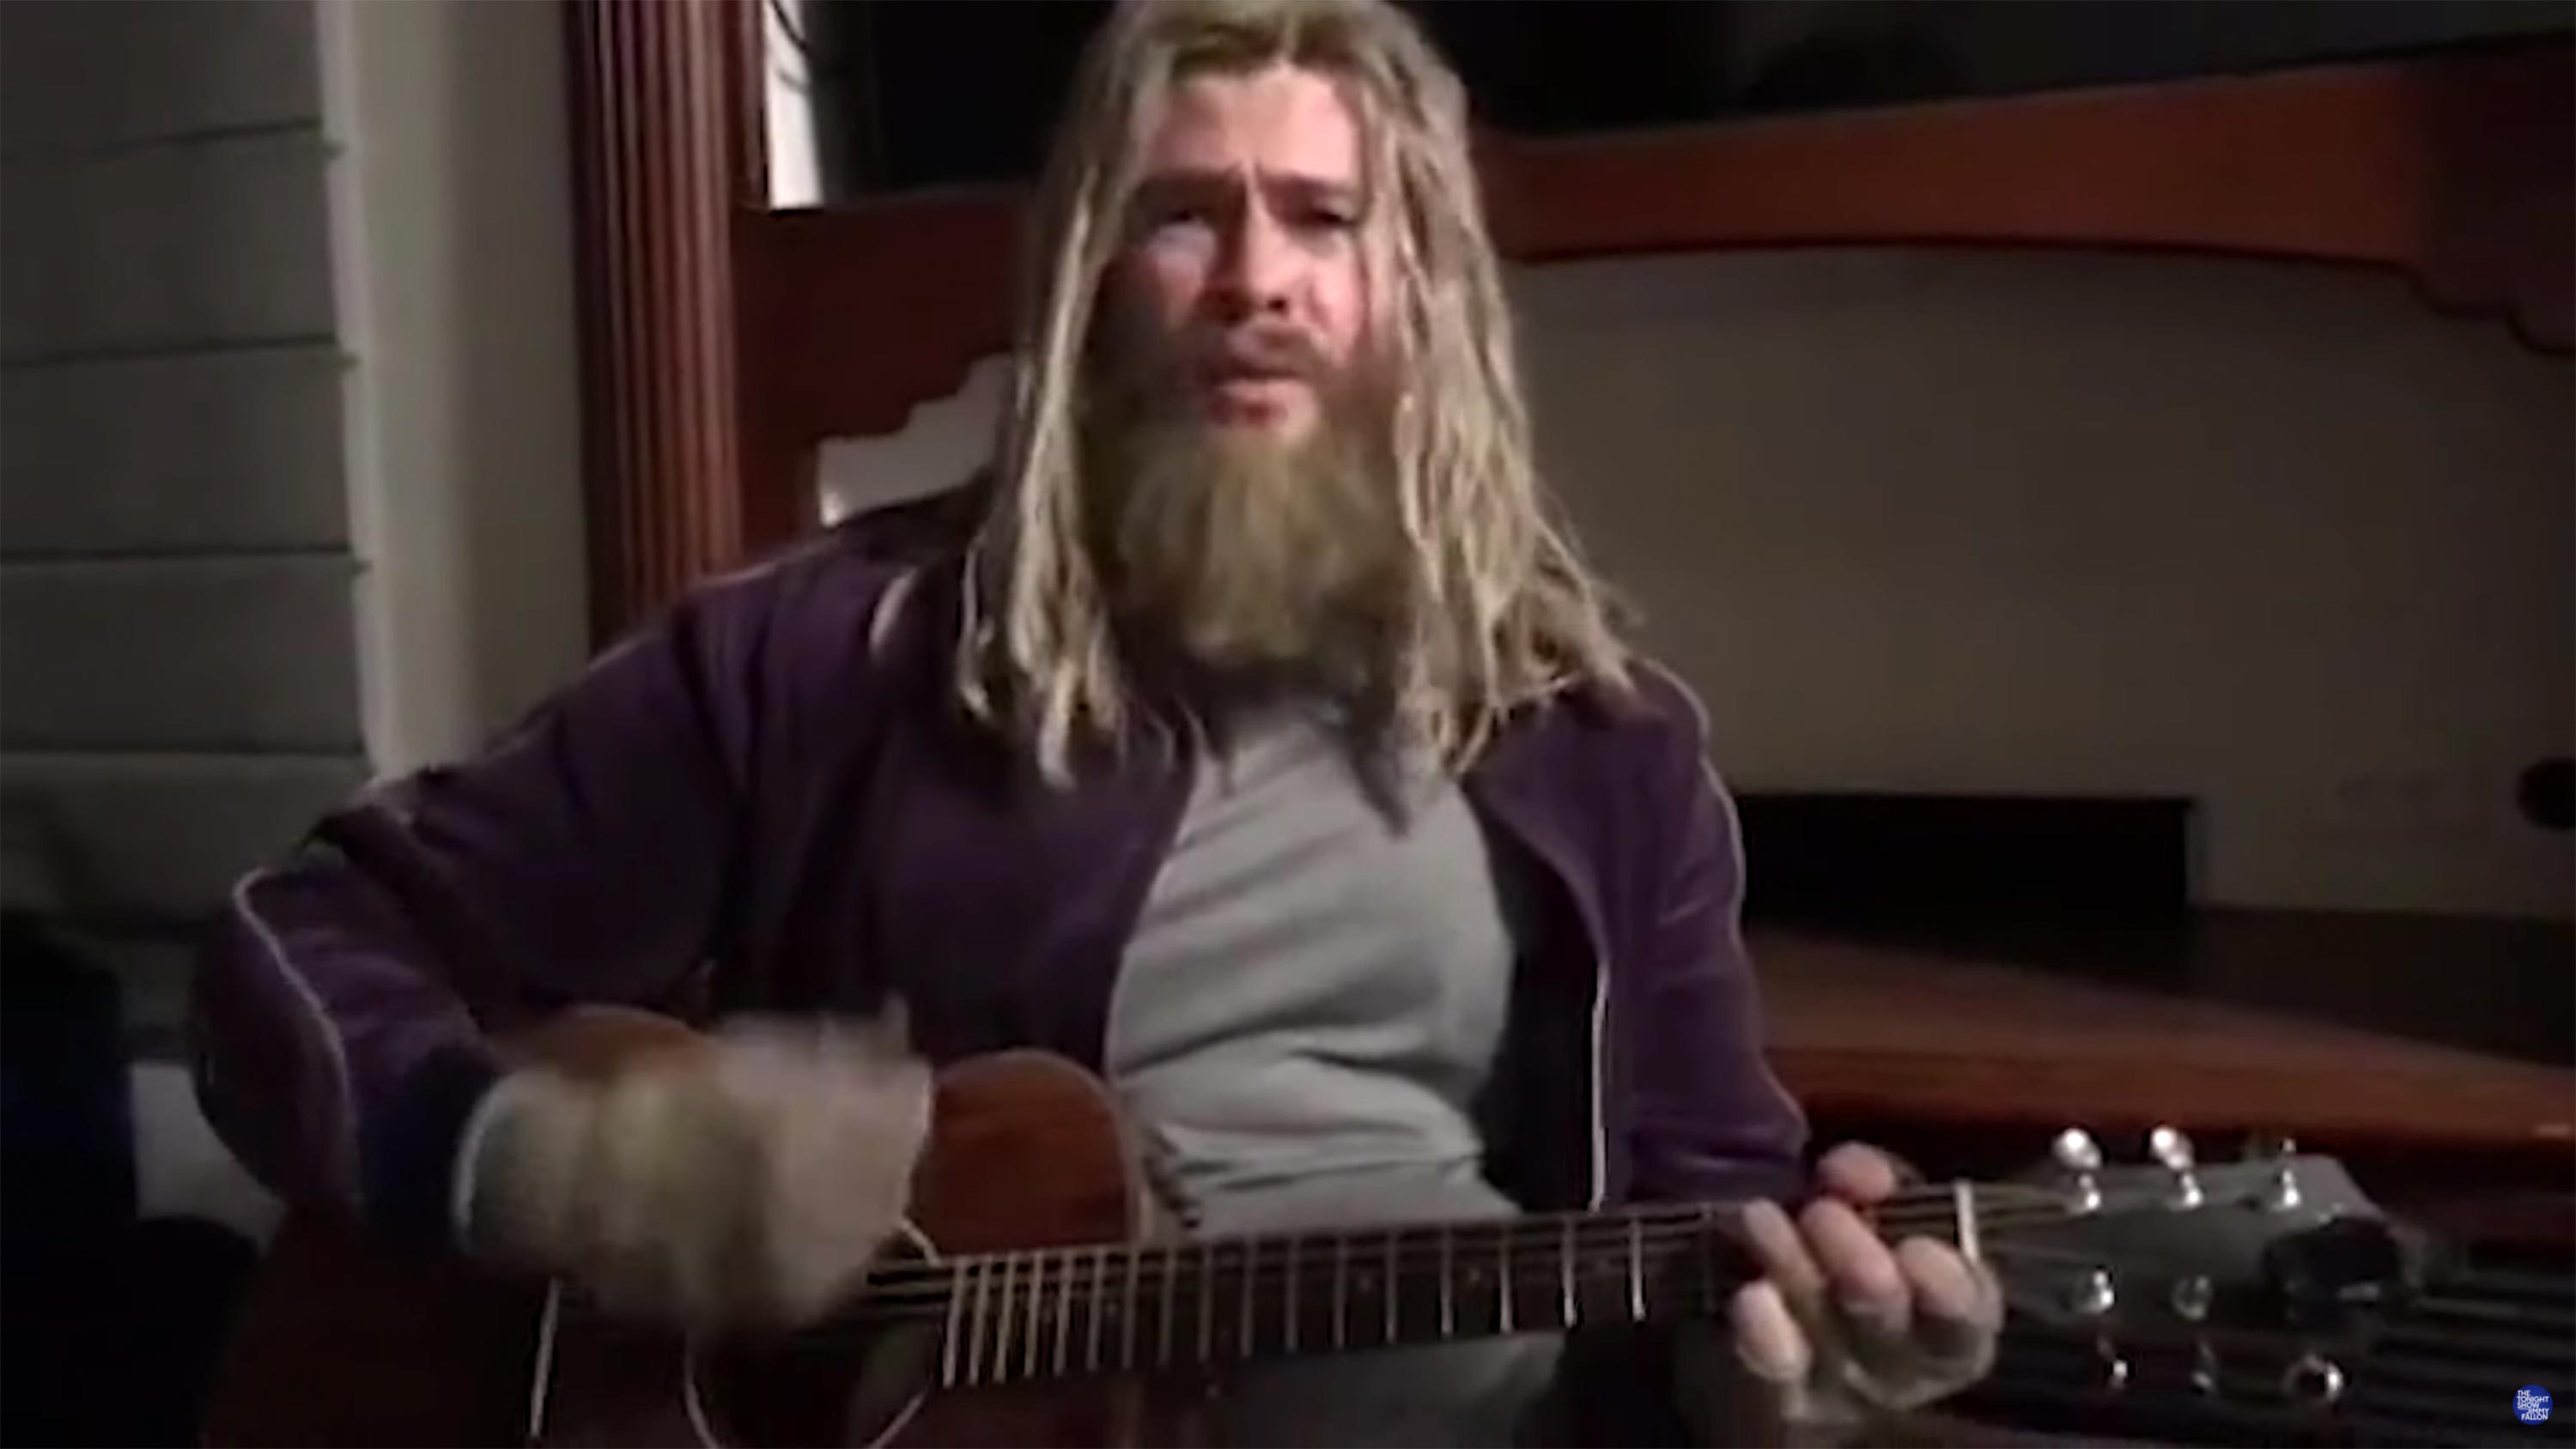 """See Chris Hemsworth's """"Fat Thor"""" Cover Nine Inch Nails' """"Hurt"""" on 'Fallon'"""